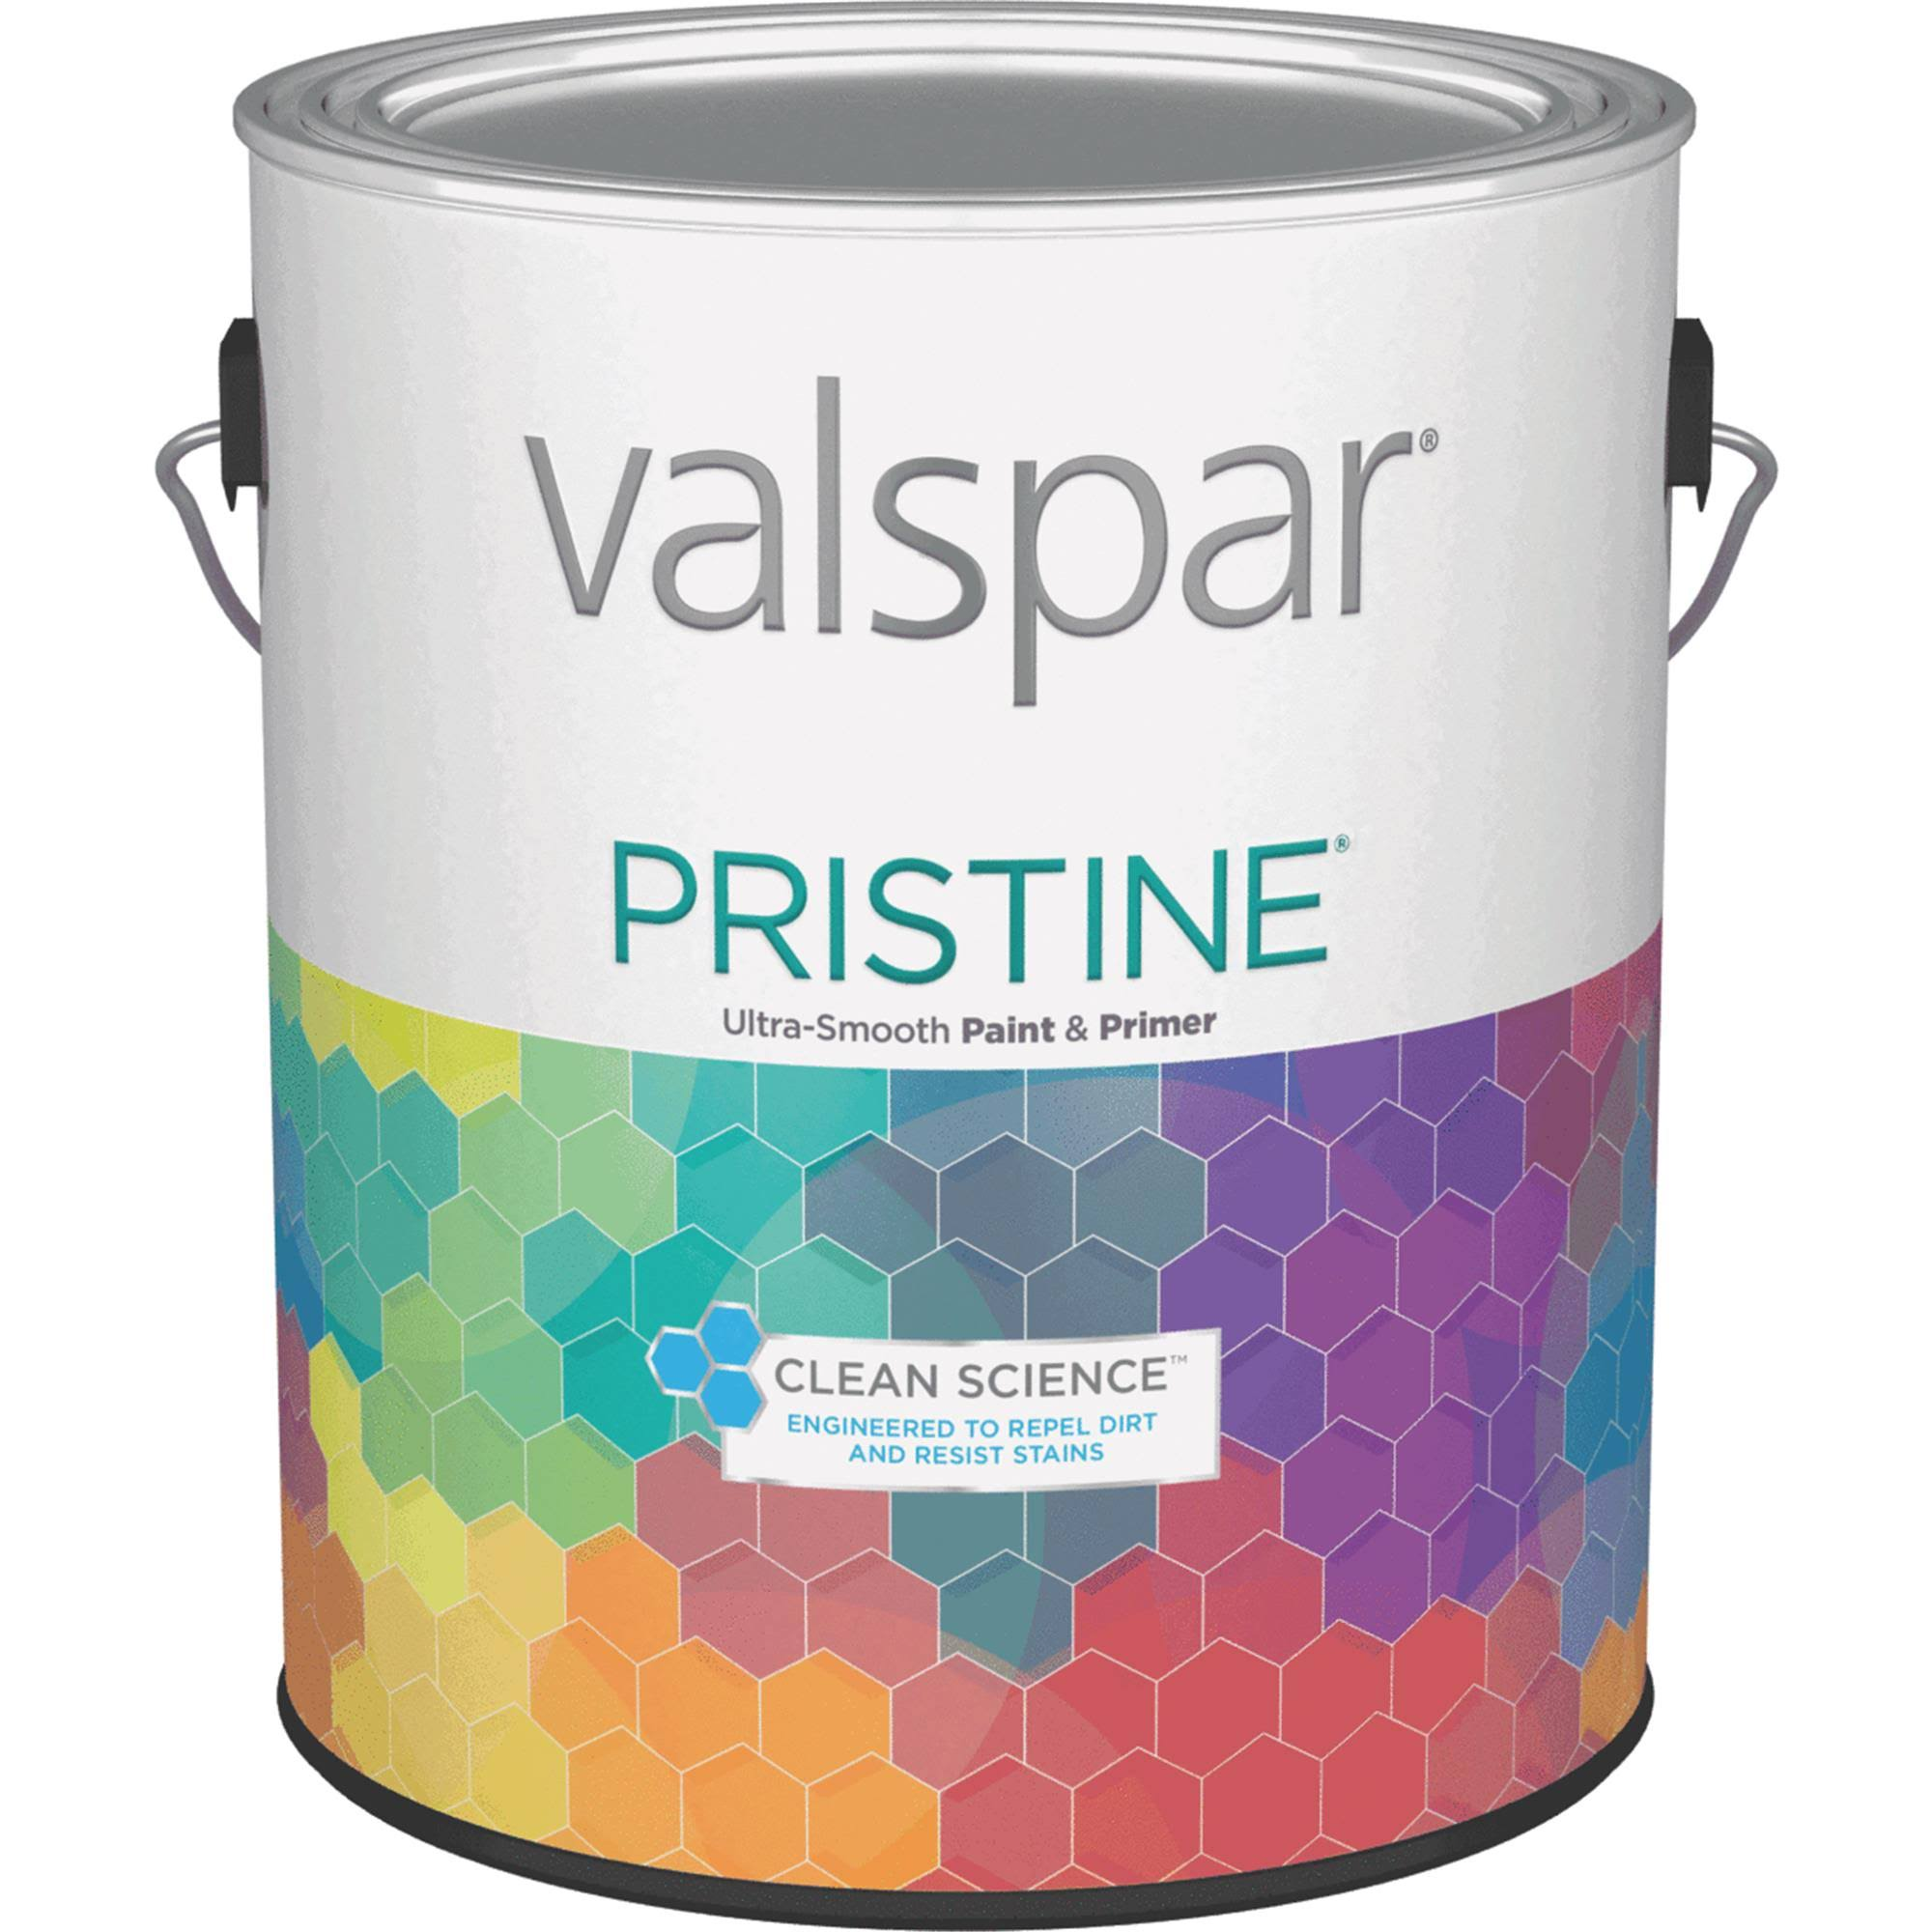 Valspar Pristine 100 Acrylic Paint and Primer Satin Interior Wall Paint - Pastel Base